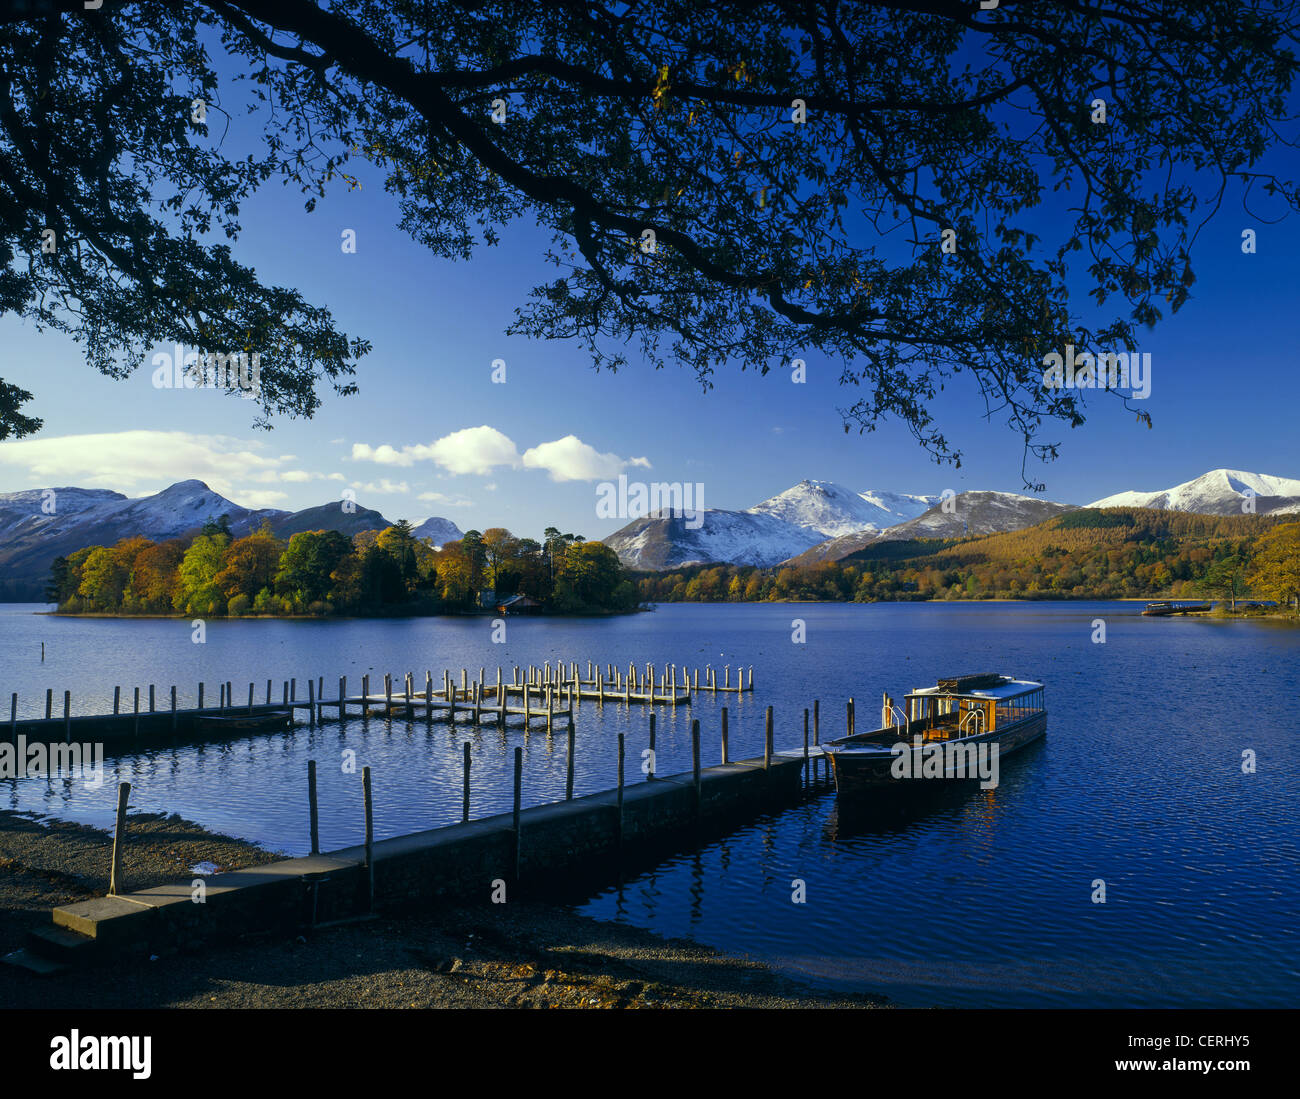 Boat tied to a jetty on Derwent Water at Friar's Crag. Stock Photo